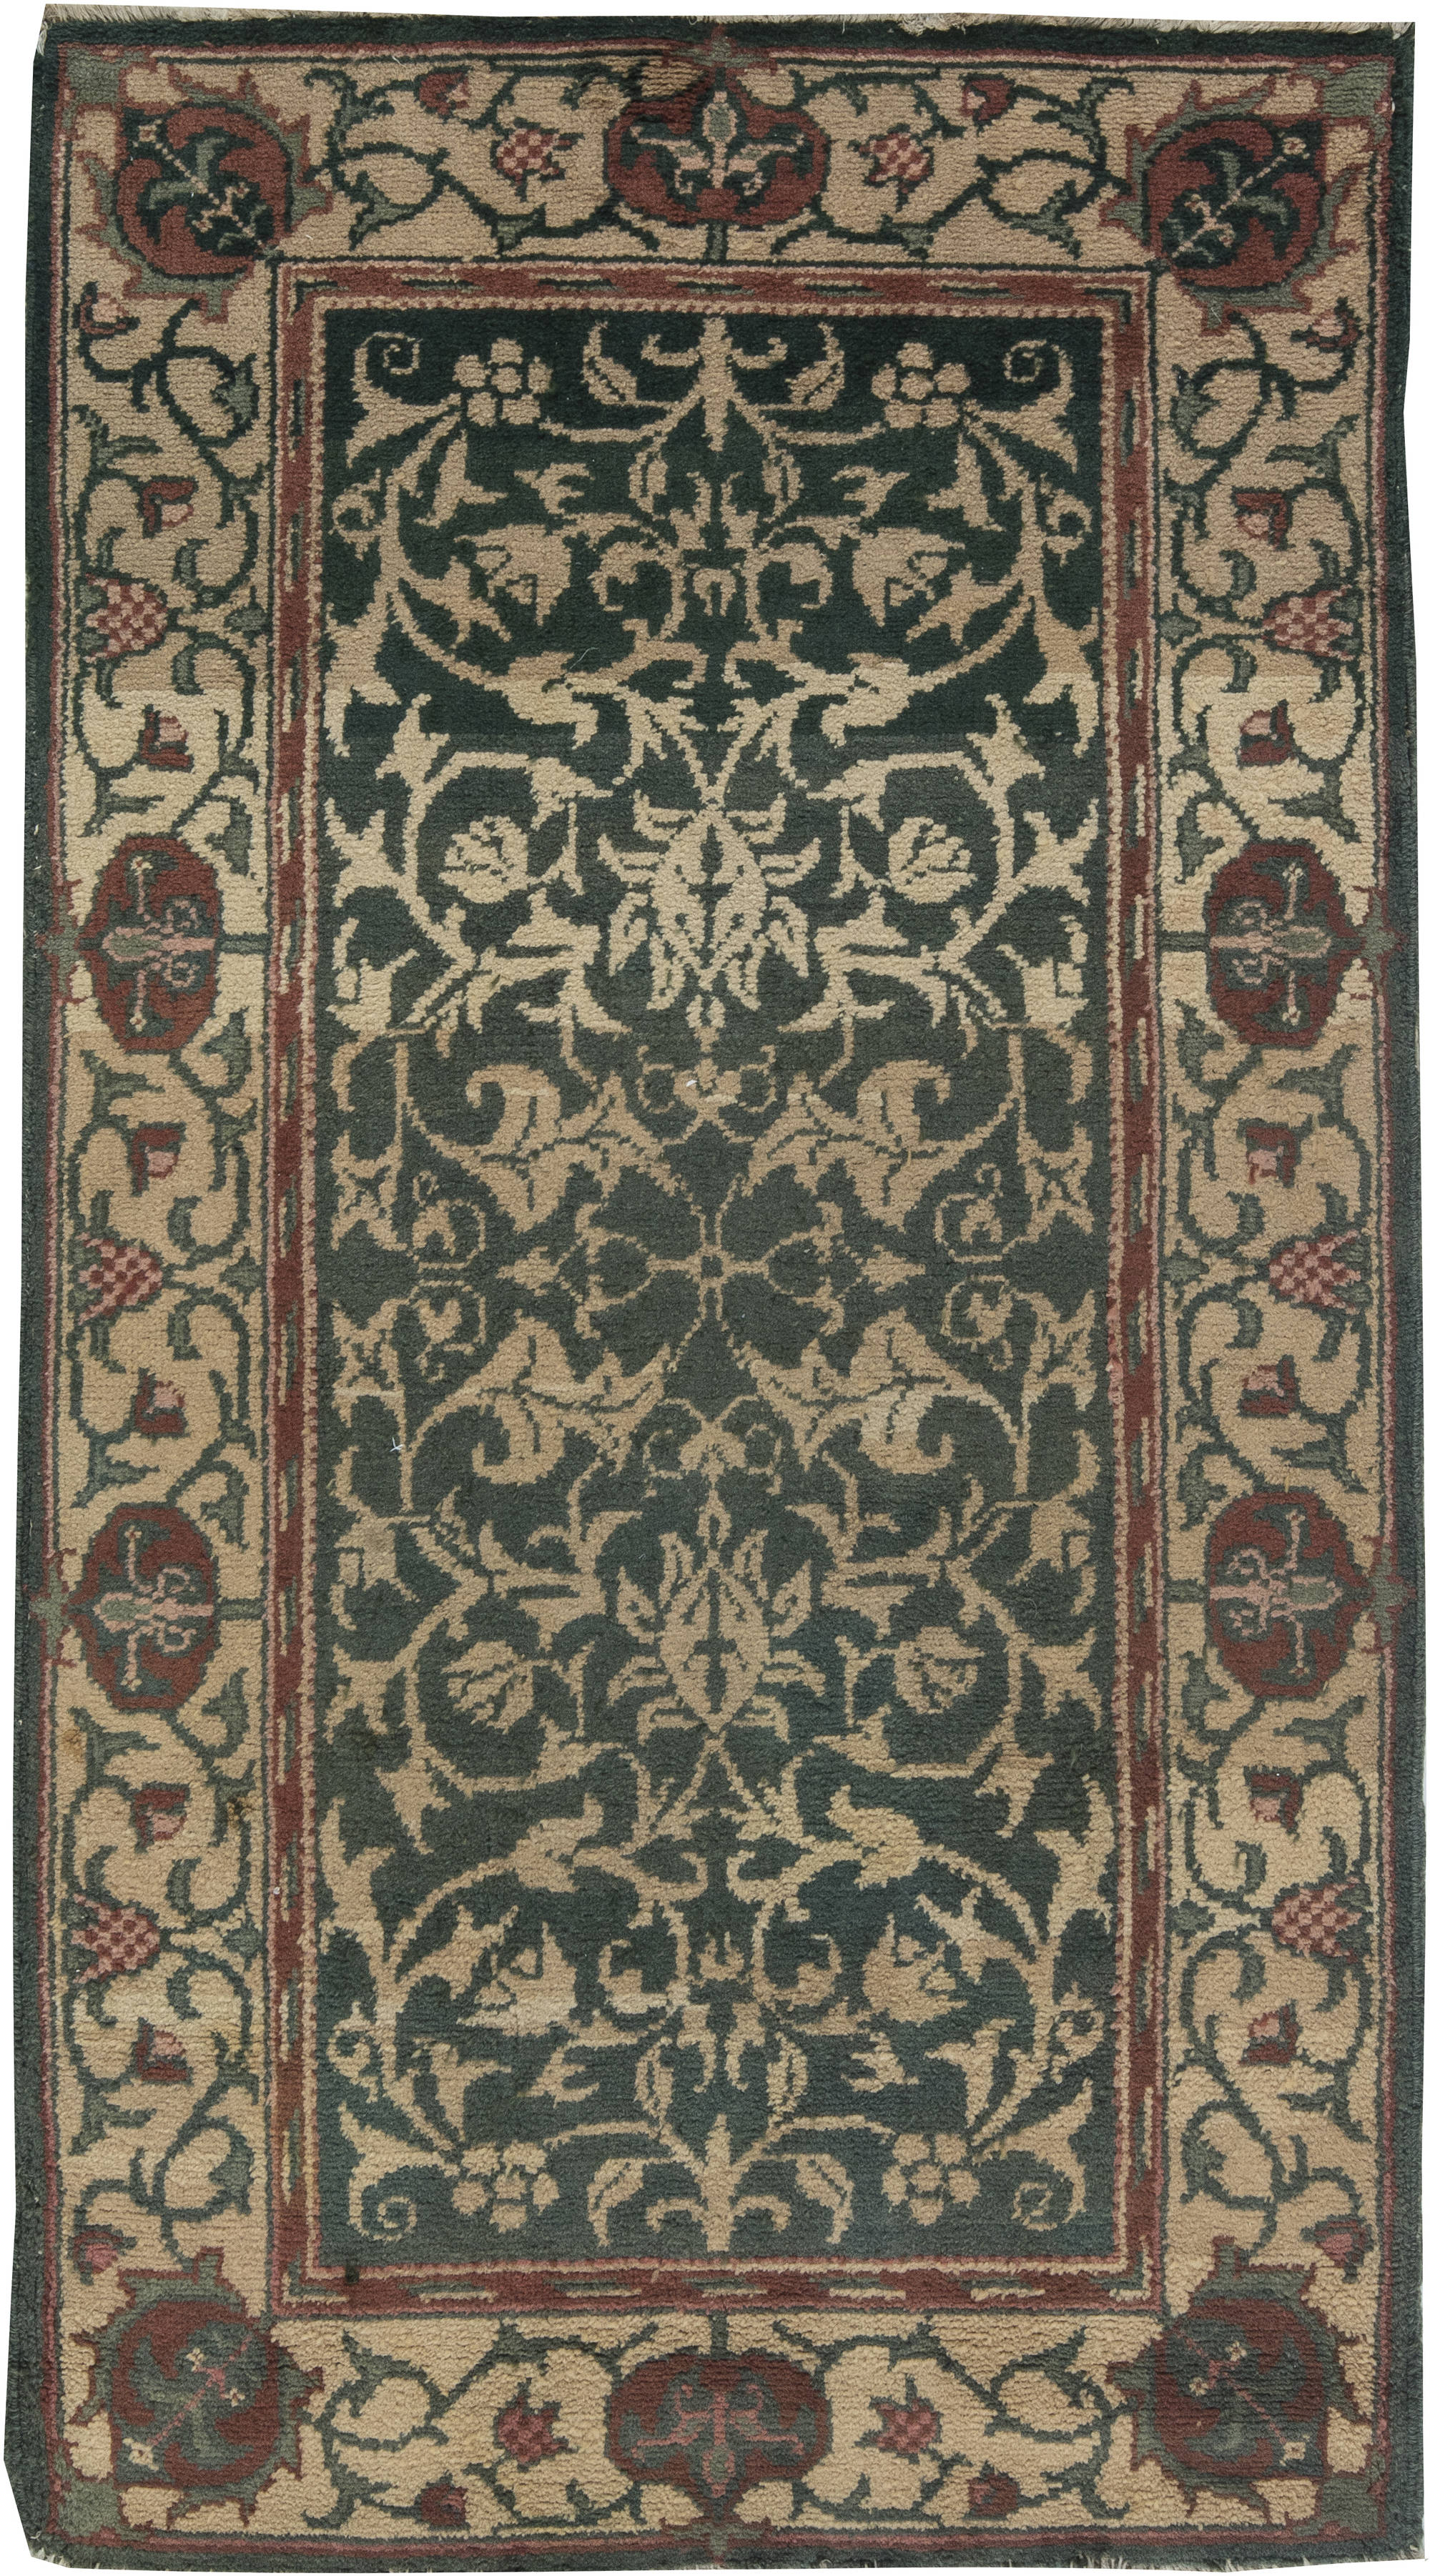 Vintage William Morris Rug Bb6379 By Dlb